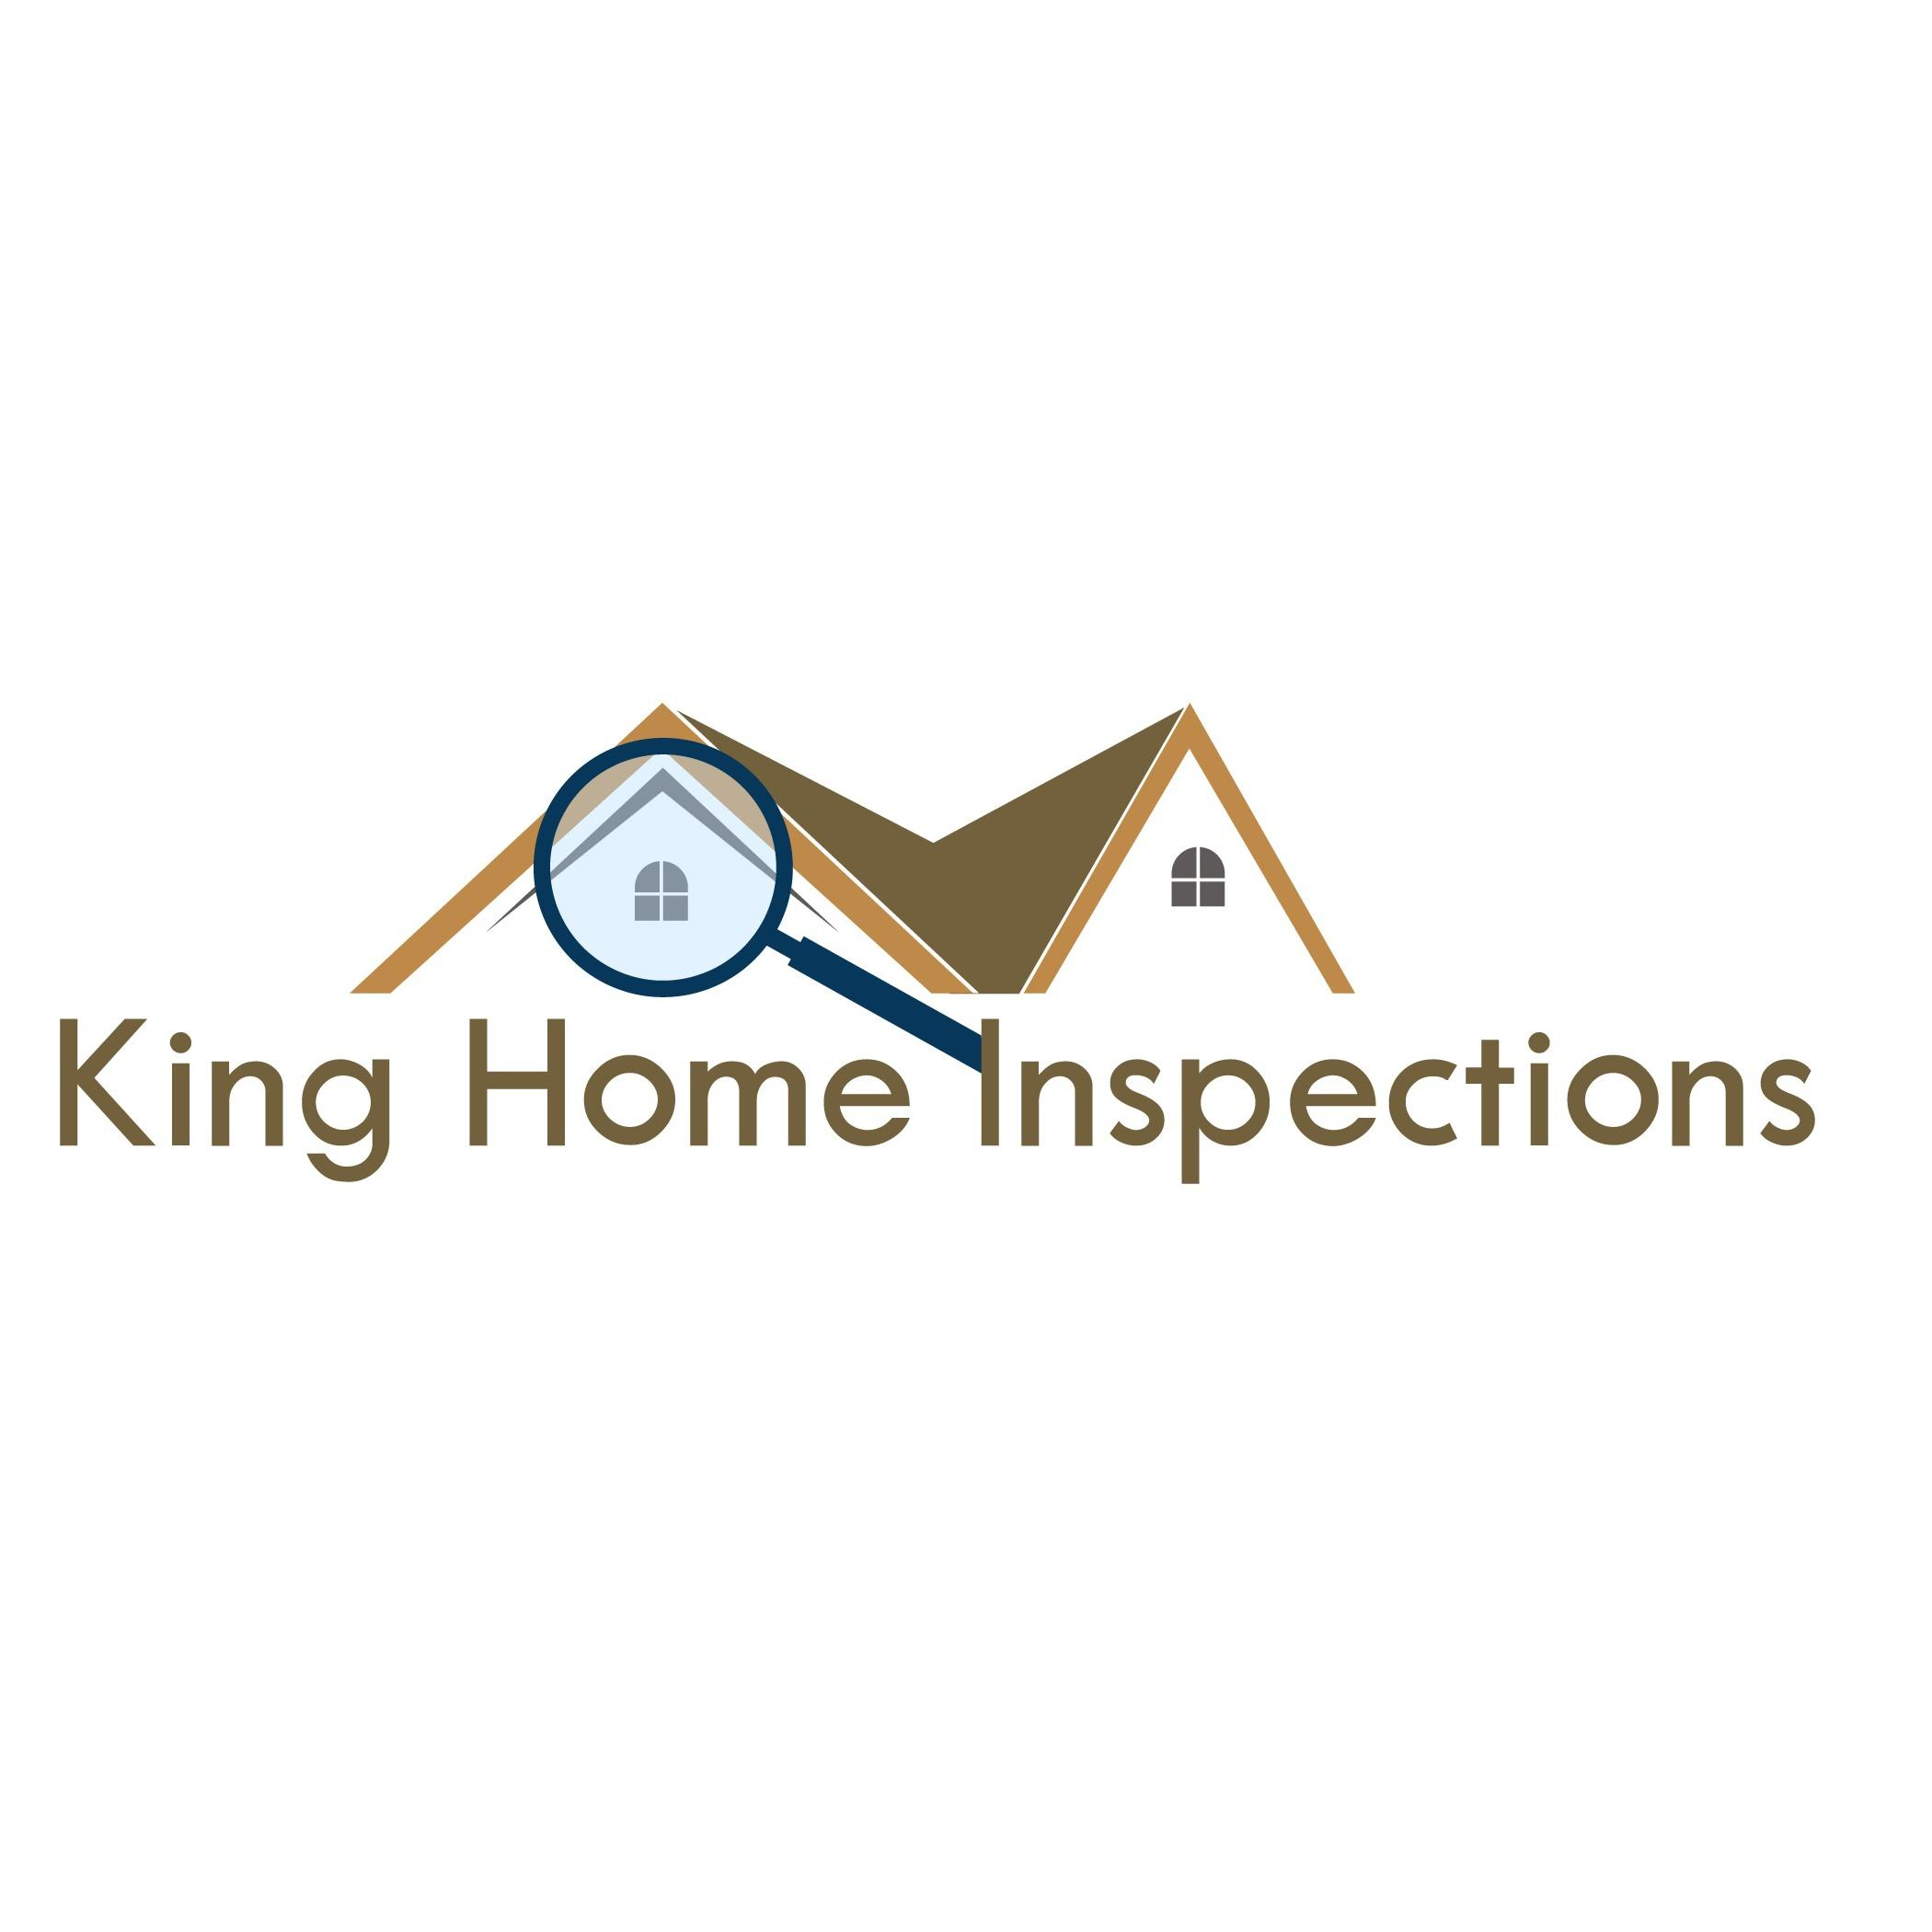 King Home Inspections